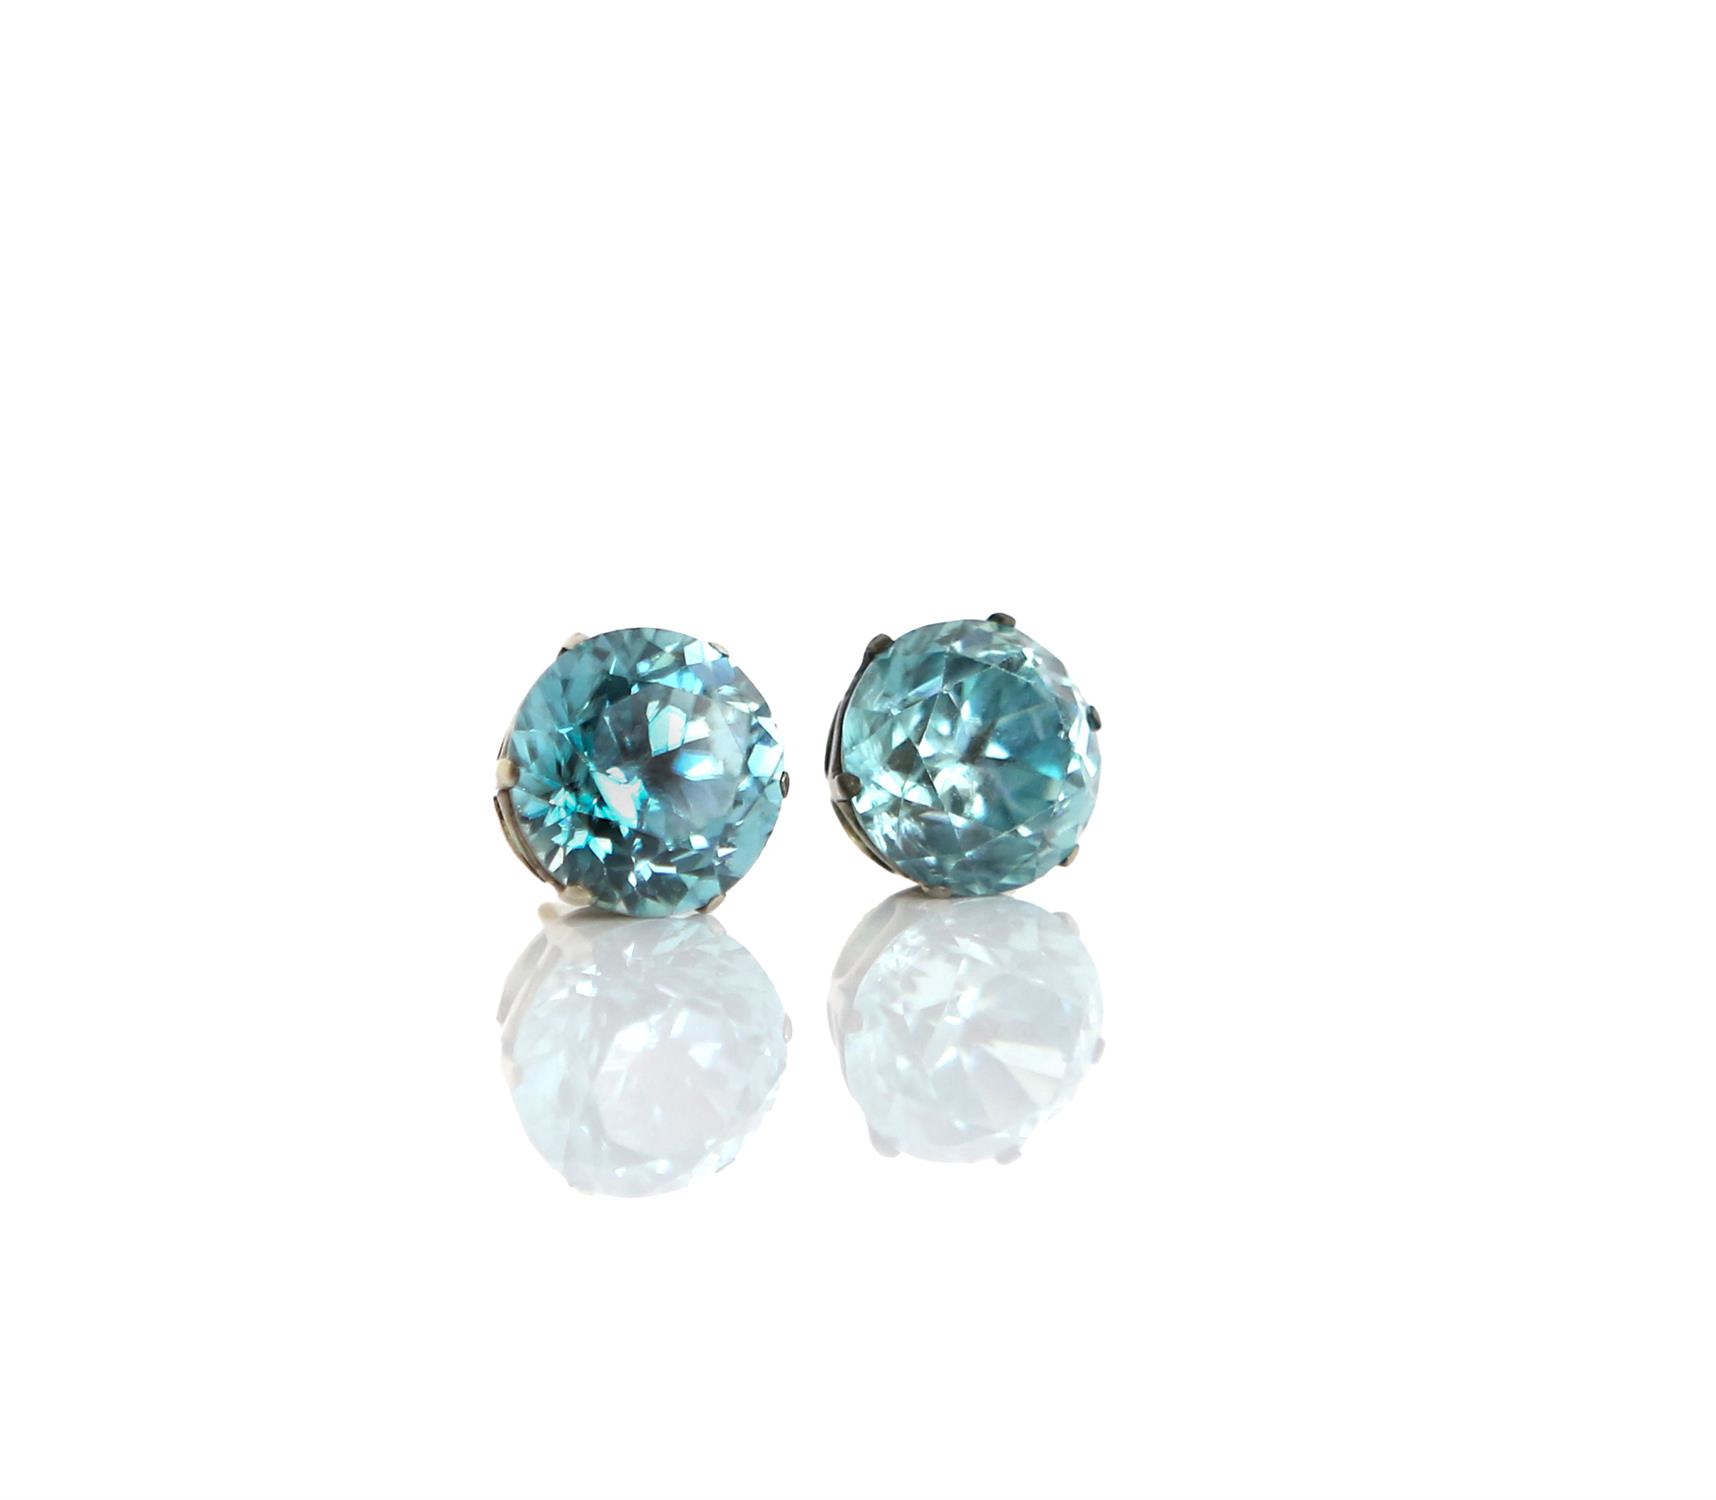 Early 19th Century blue Zircon earrings, old cut zircons, estimated total weight 14.79 carats,